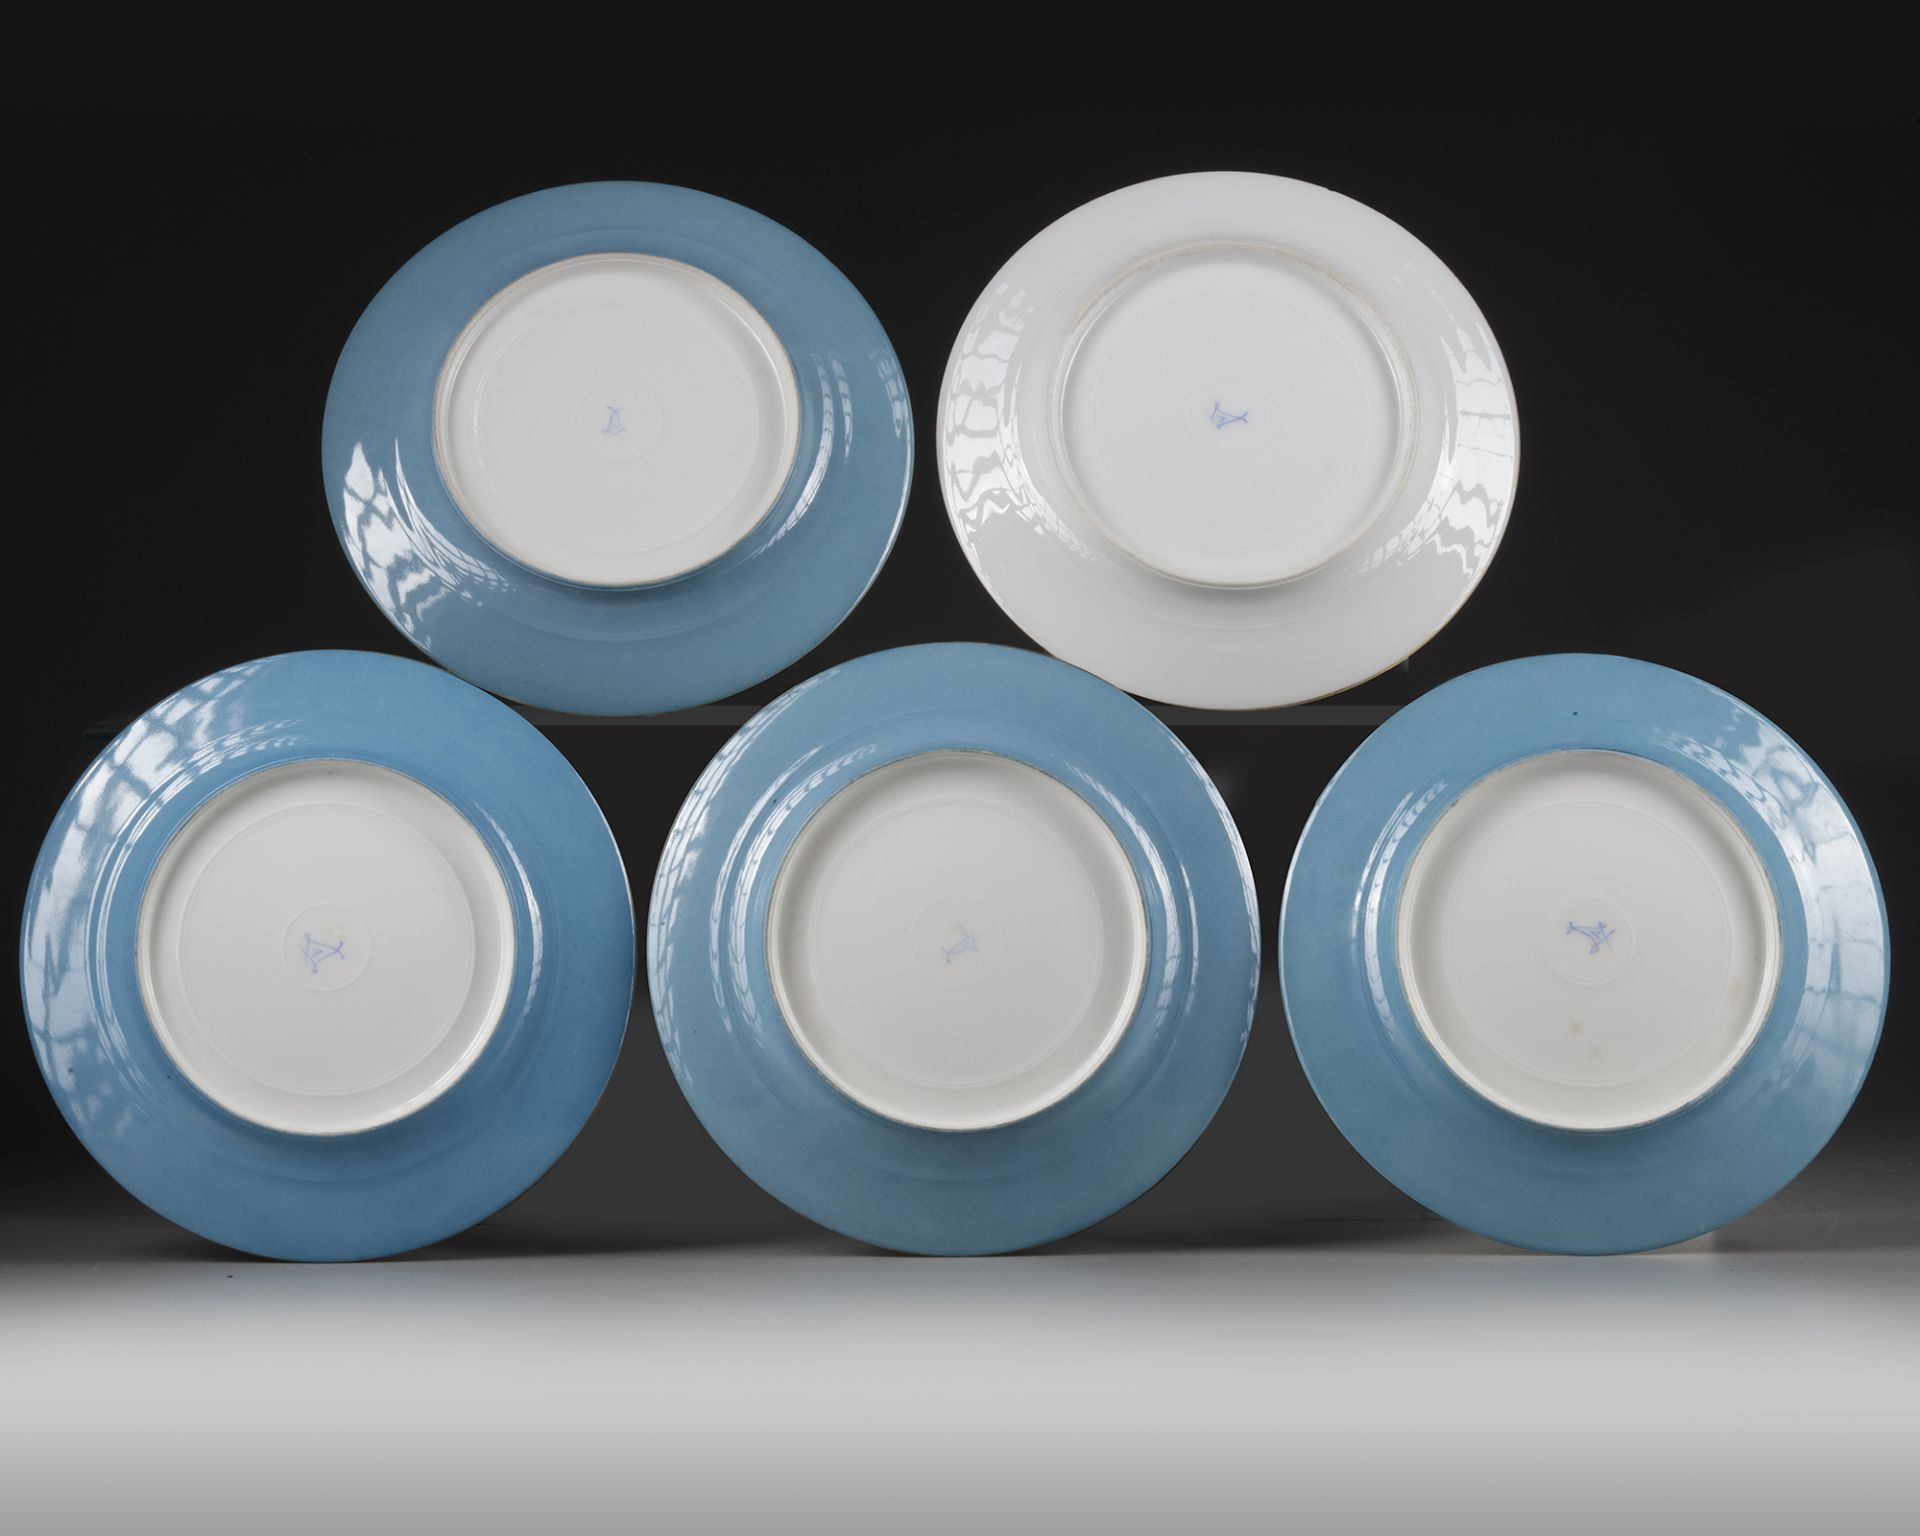 A SET OF SEVRES PLATES, LATE 19TH CENTURY - Image 2 of 2